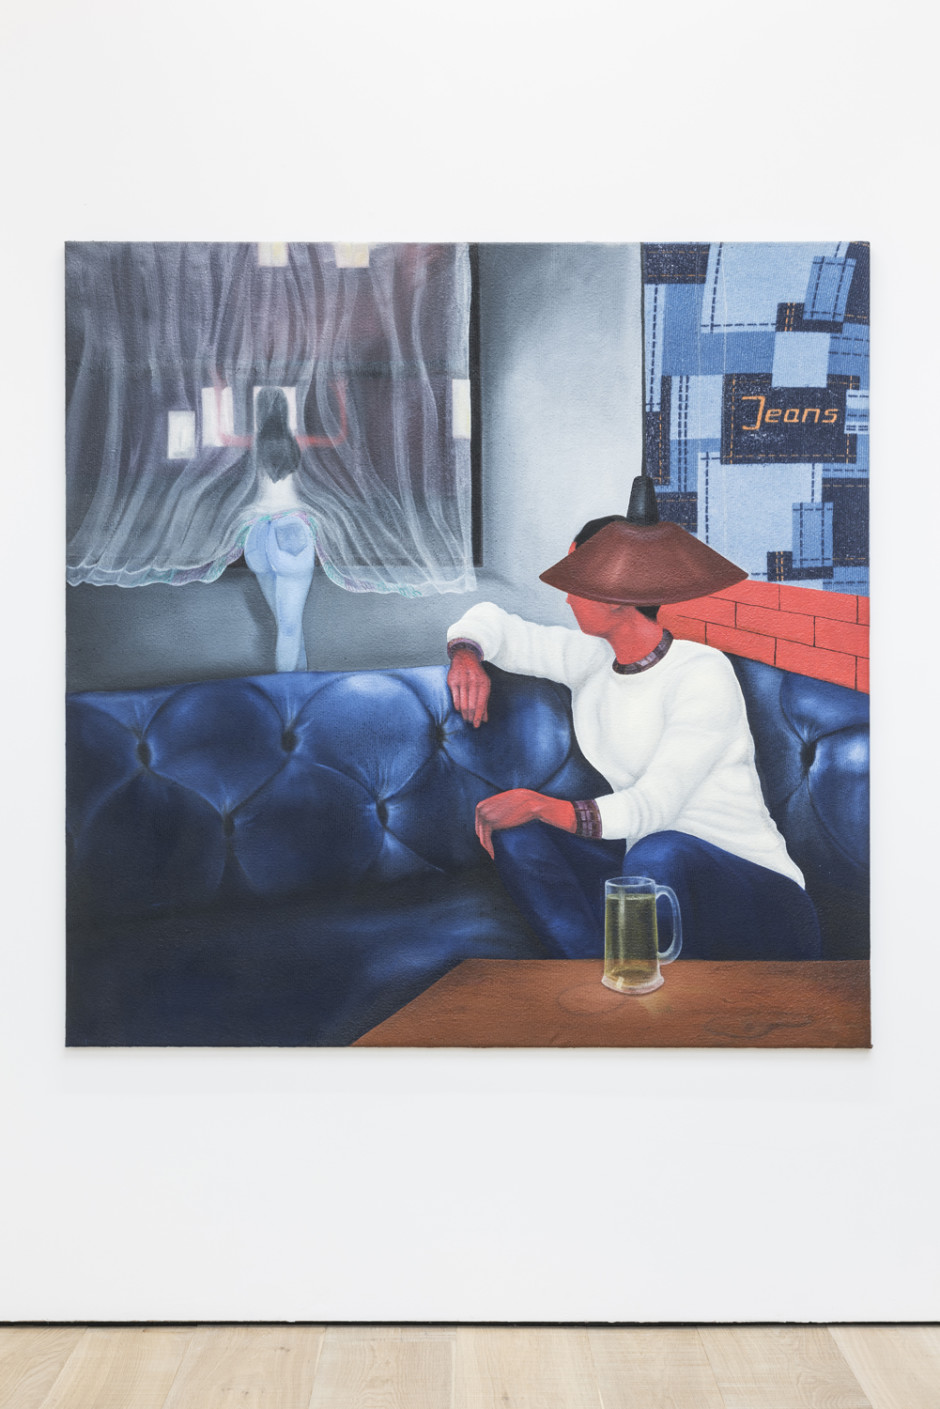 Don't open up the window and let out the antidote, 2017  oil on cotton  160 x 160 cm / 63 x 63 in.  Photo Credit: The Theatre of the Self, Uziyel London Home Gallery, ARTUNER